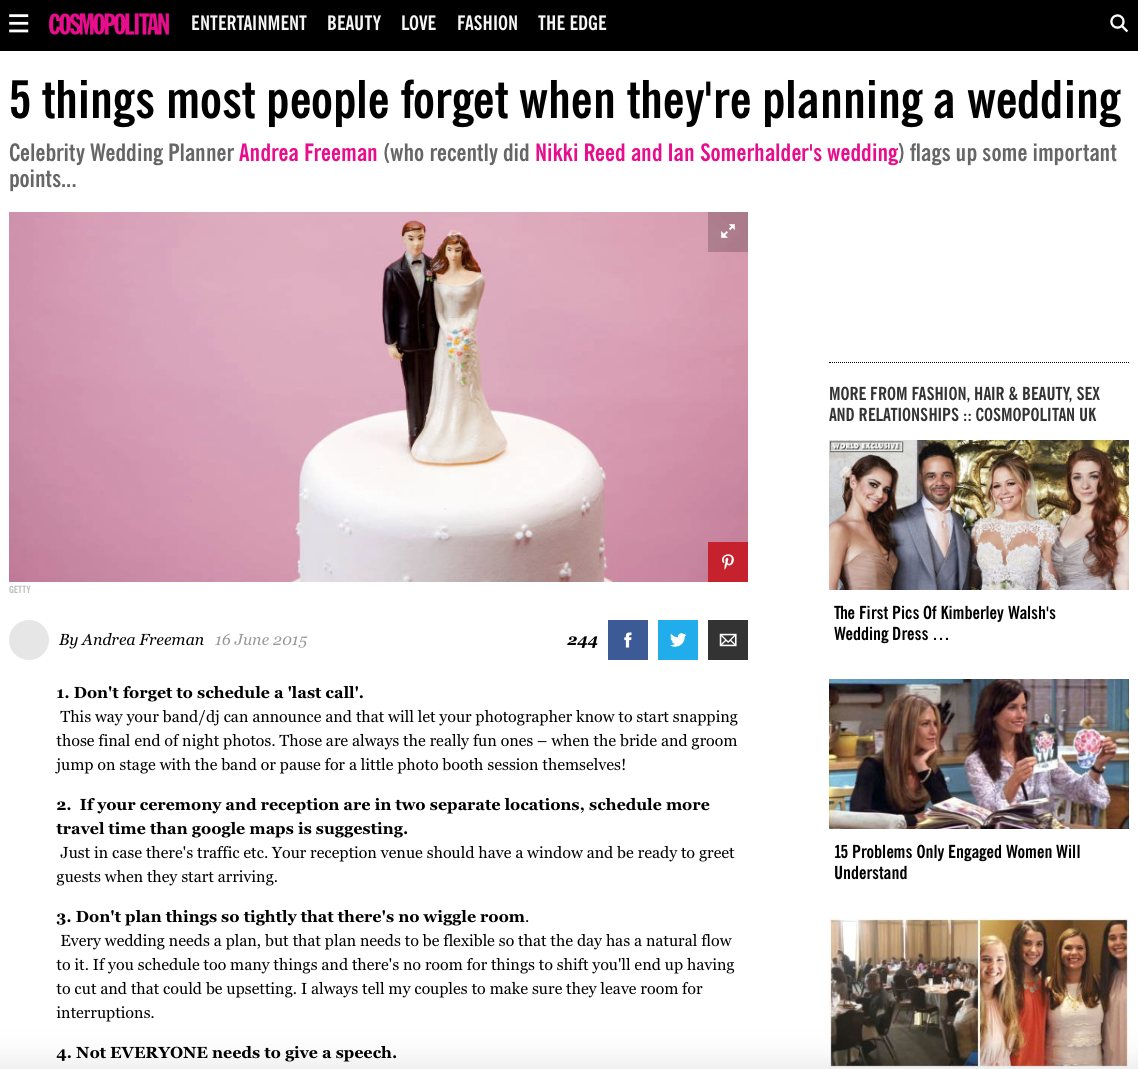 cosmopolitan-andrea-freeman-events-nyc-wedding-planner.png